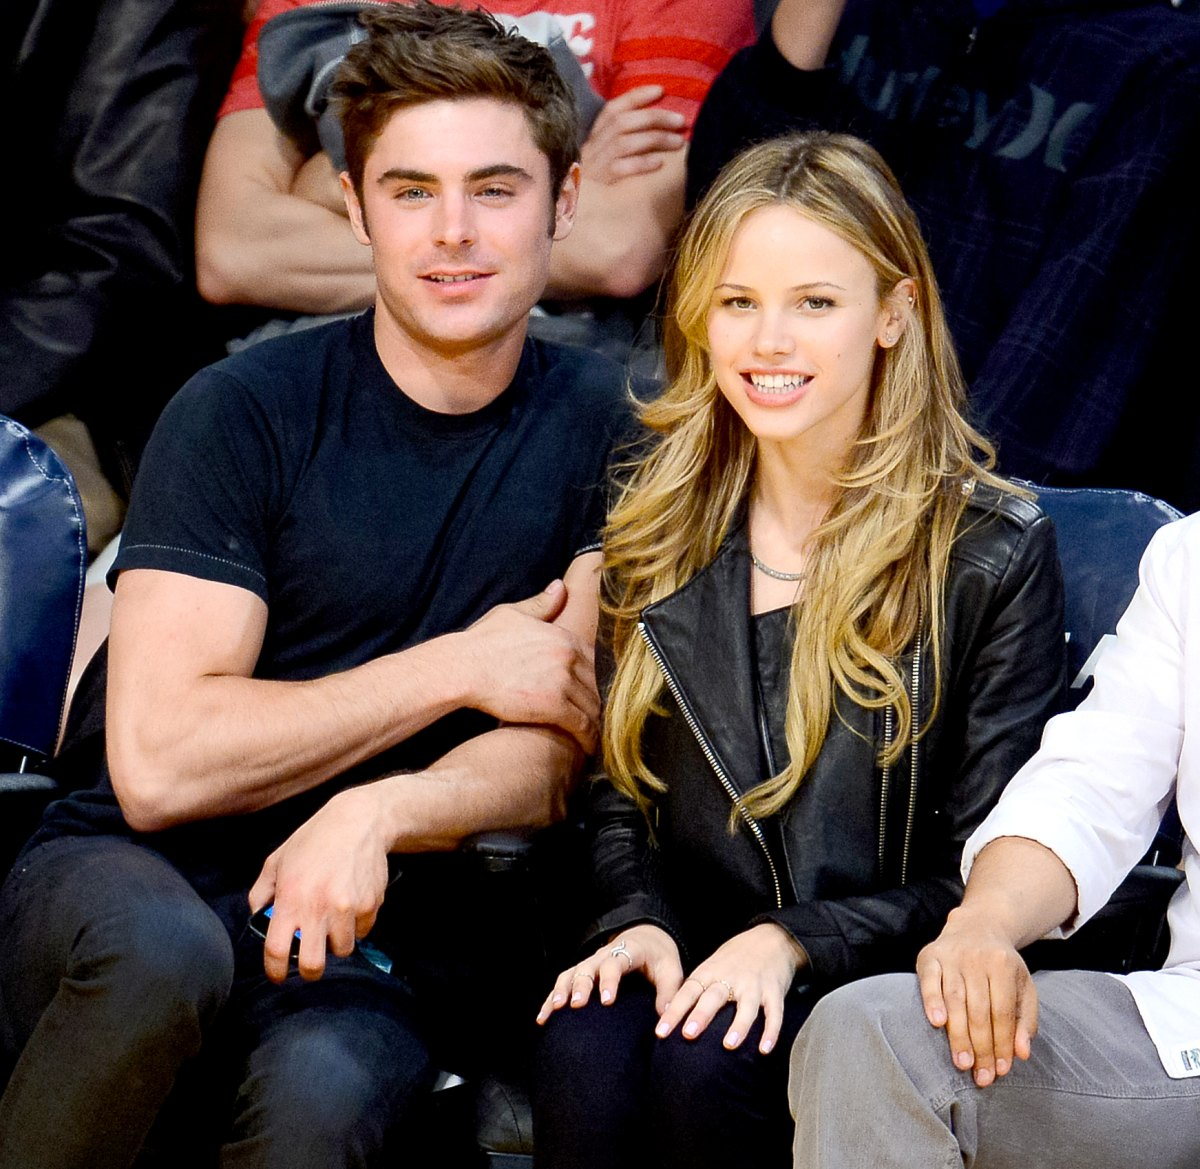 Zac efron dating 2014 rowupdating event in gridview in asp net